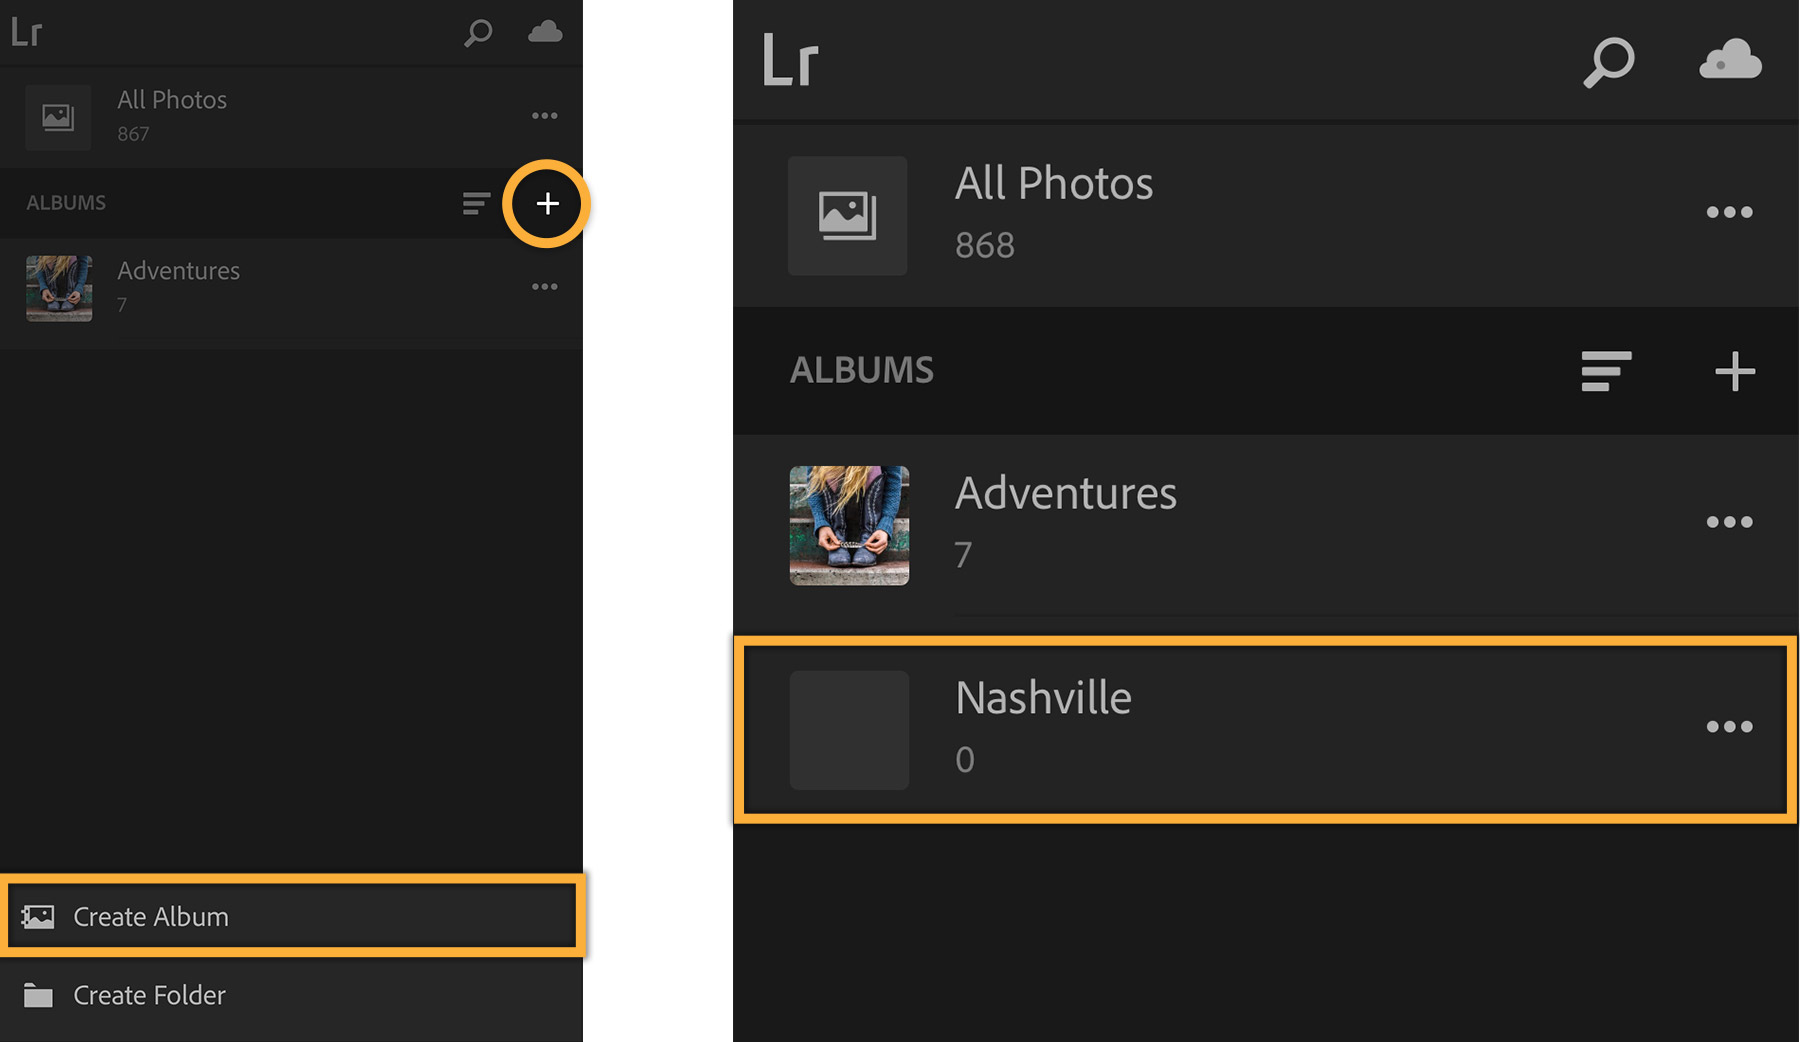 lightroom-mobile-manage-albums_fig2